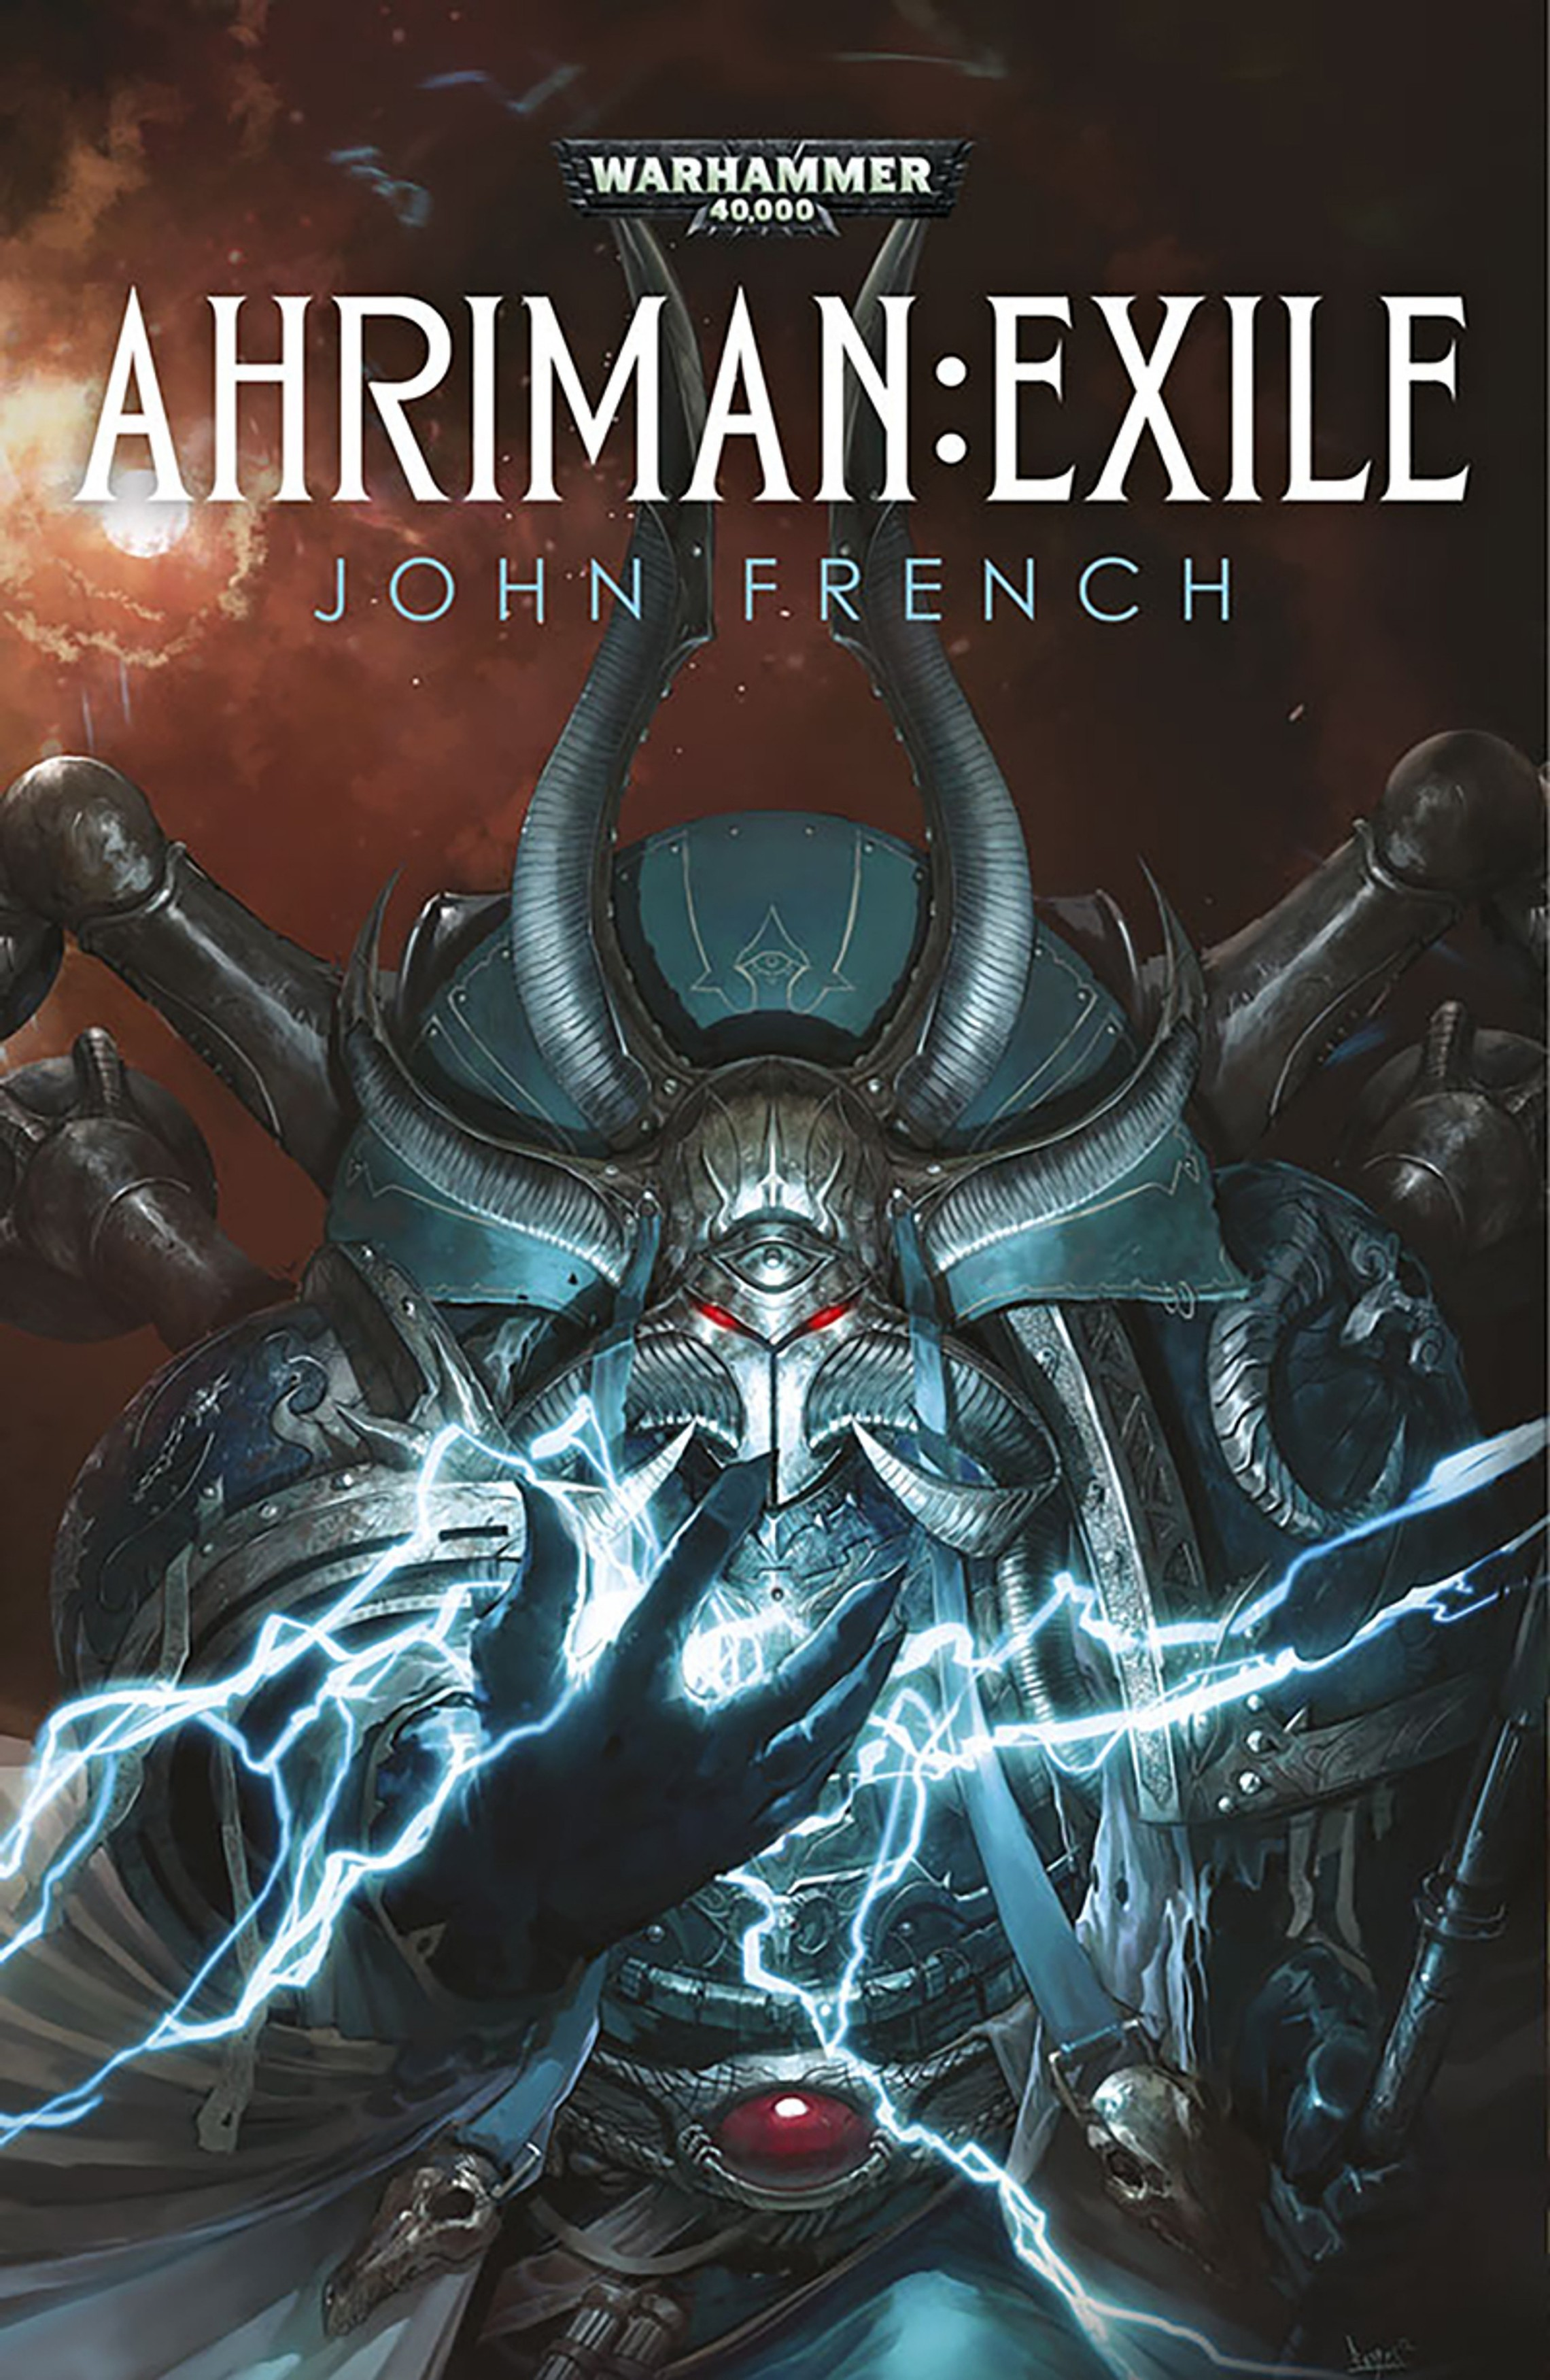 Ahriman: Exile by John French